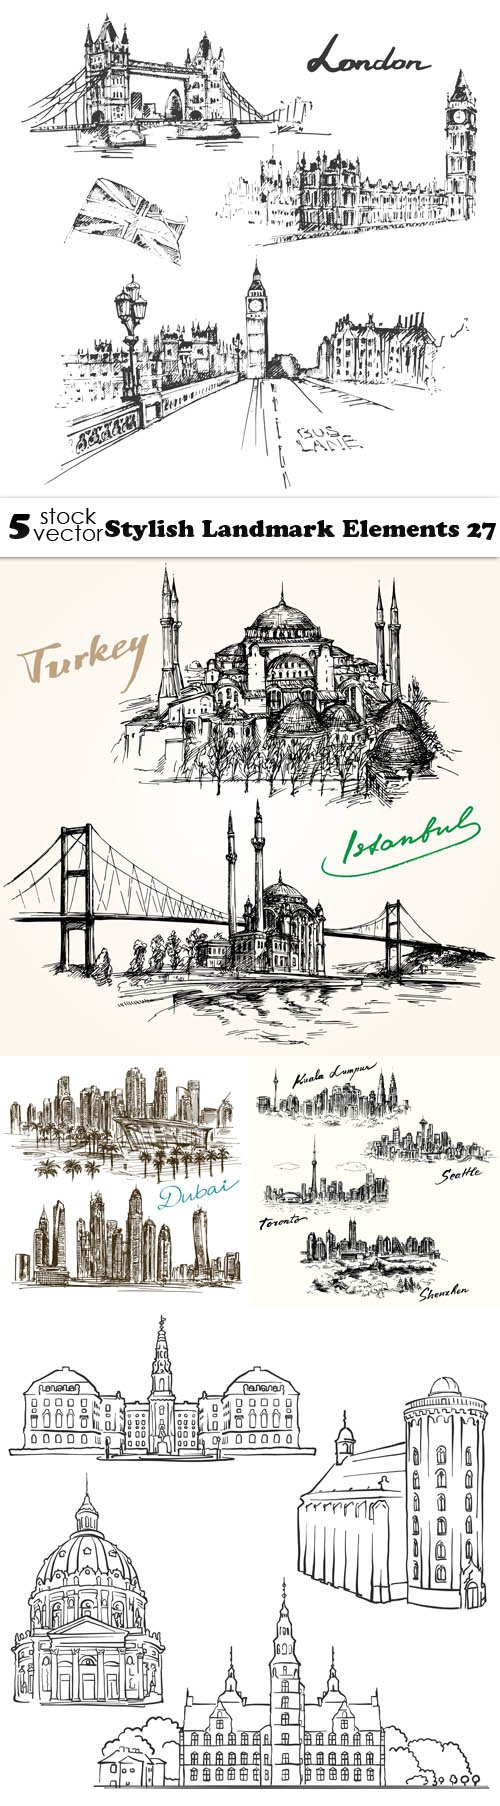 Vectors - Stylish Landmark Elements 27